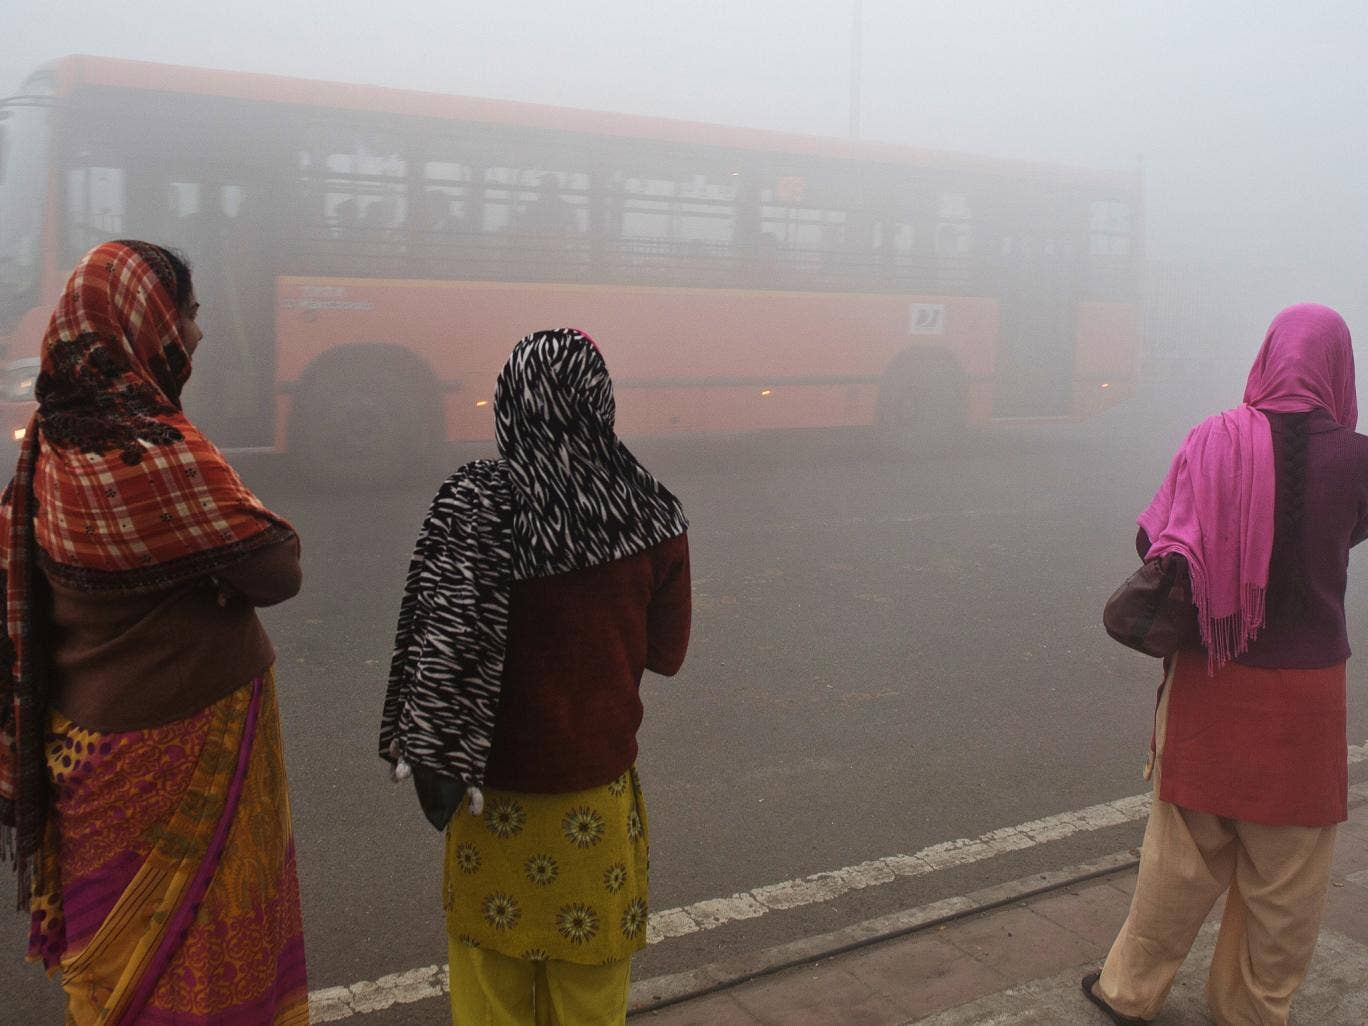 Anecdotal reports suggest this year has been one of the worst winters in Delhi for air quality and smog